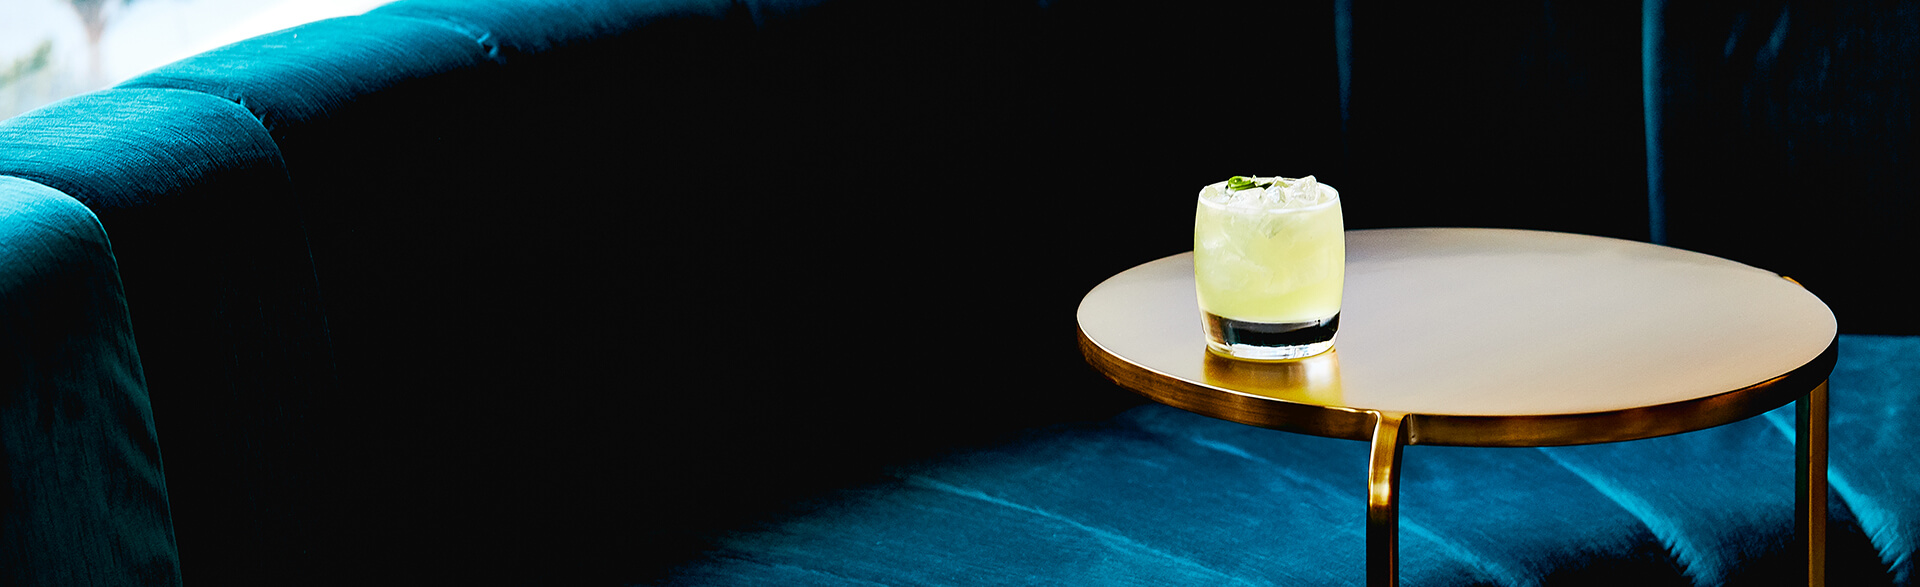 a cocktail on a gold side table next to a couch